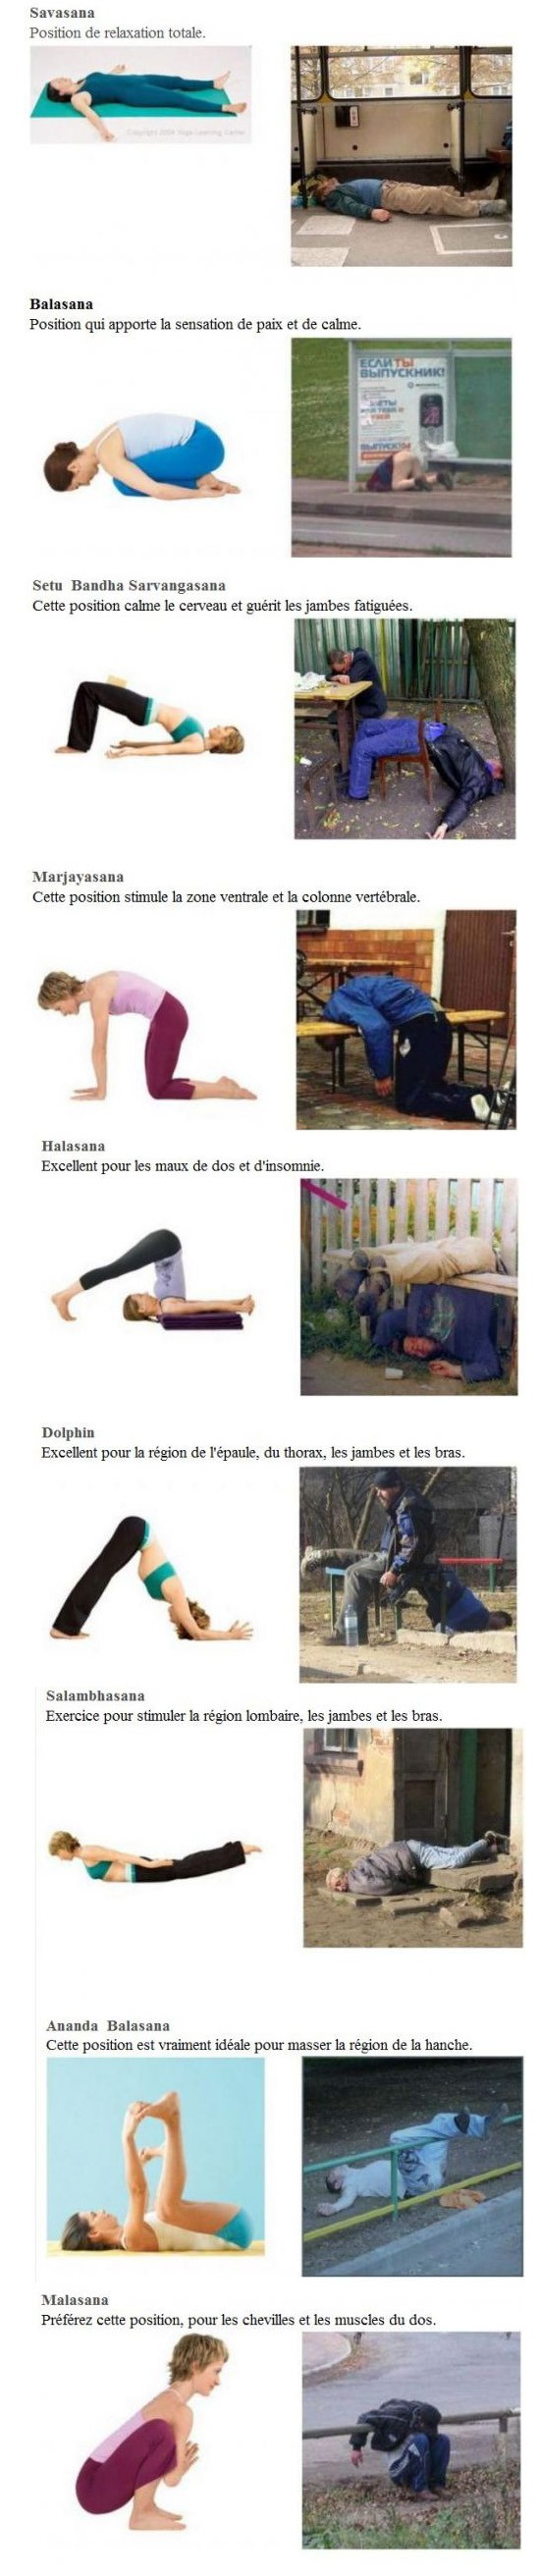 [Humour] Blagues, images, videos ... - Page 6 Gaetan10